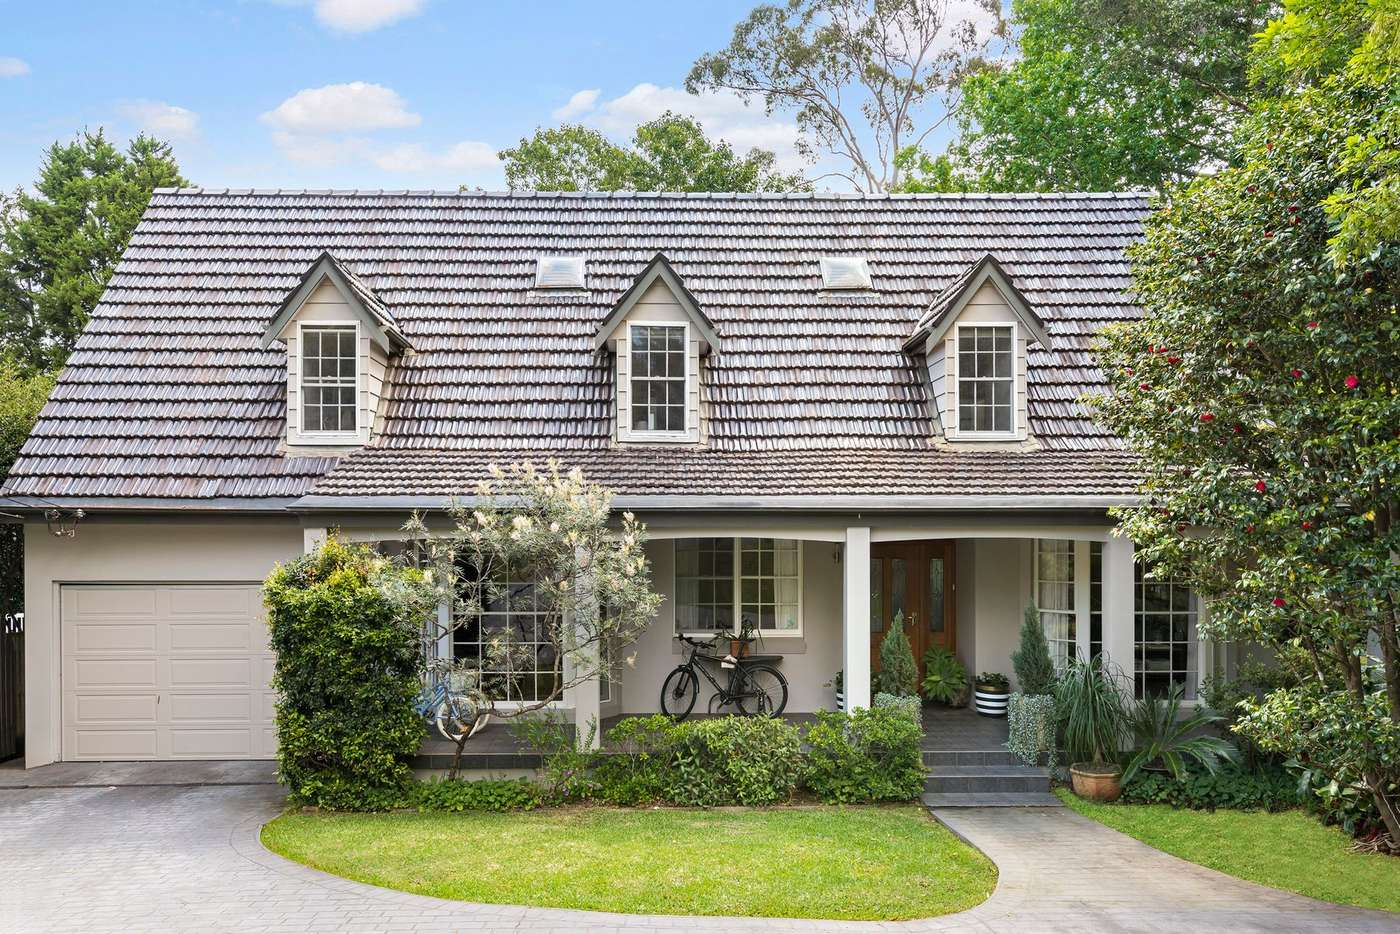 Main view of Homely house listing, 5 Yarrawonga Close, Pymble NSW 2073